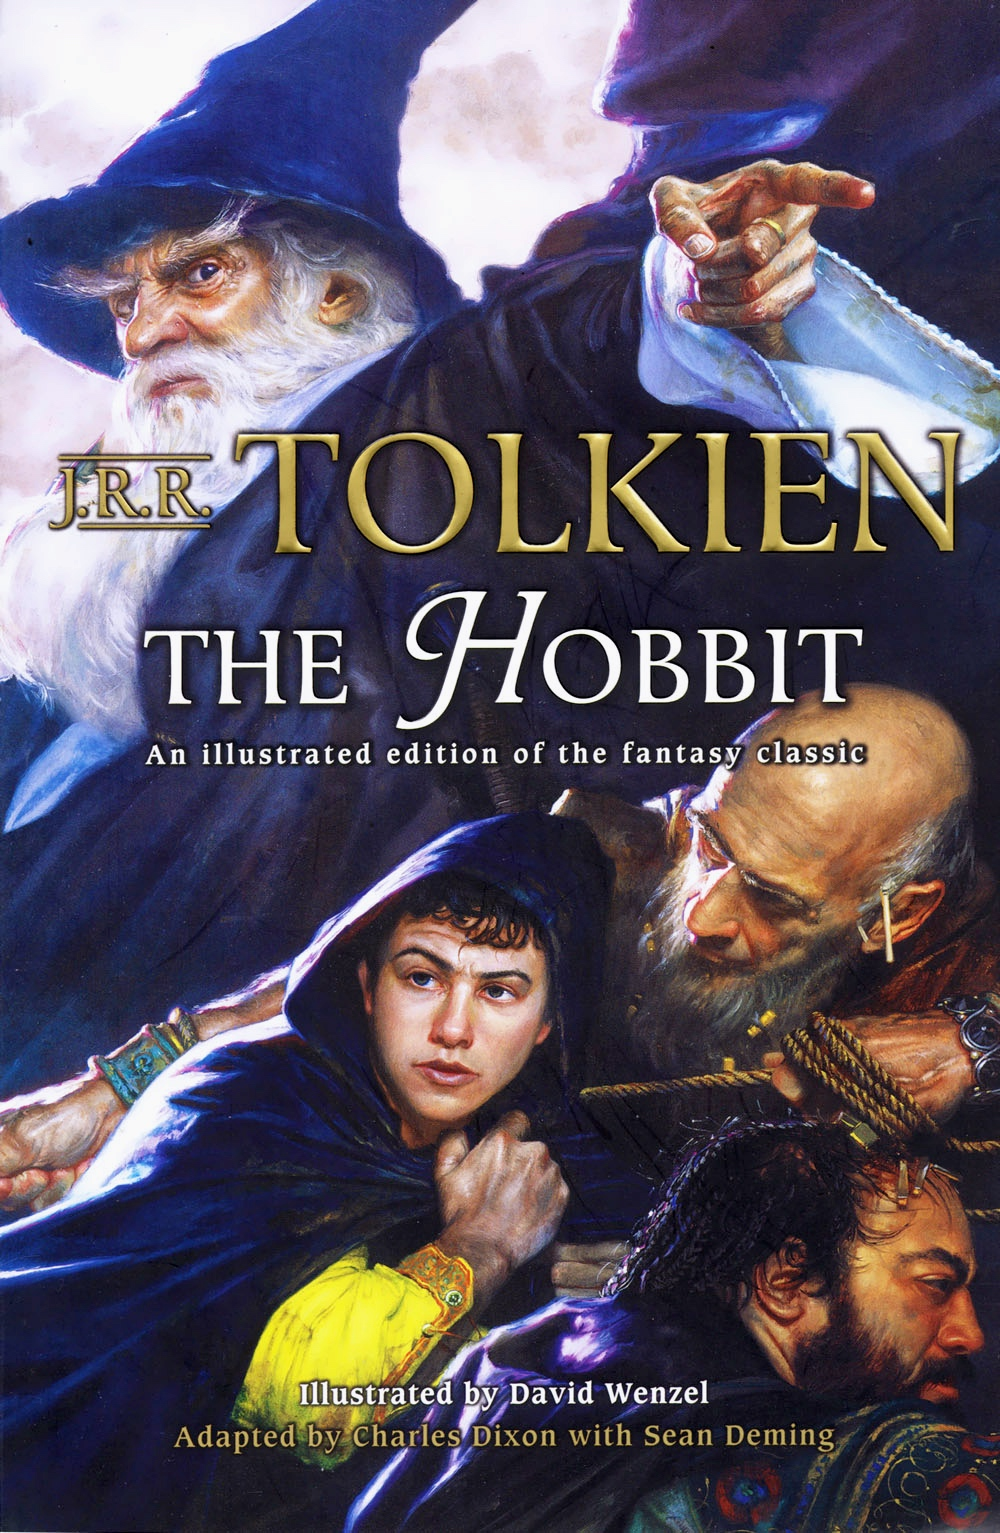 The hobbit the battle of the five armies film comments 2 ch 13 not at home a j carlisle - Hobbit book ends ...